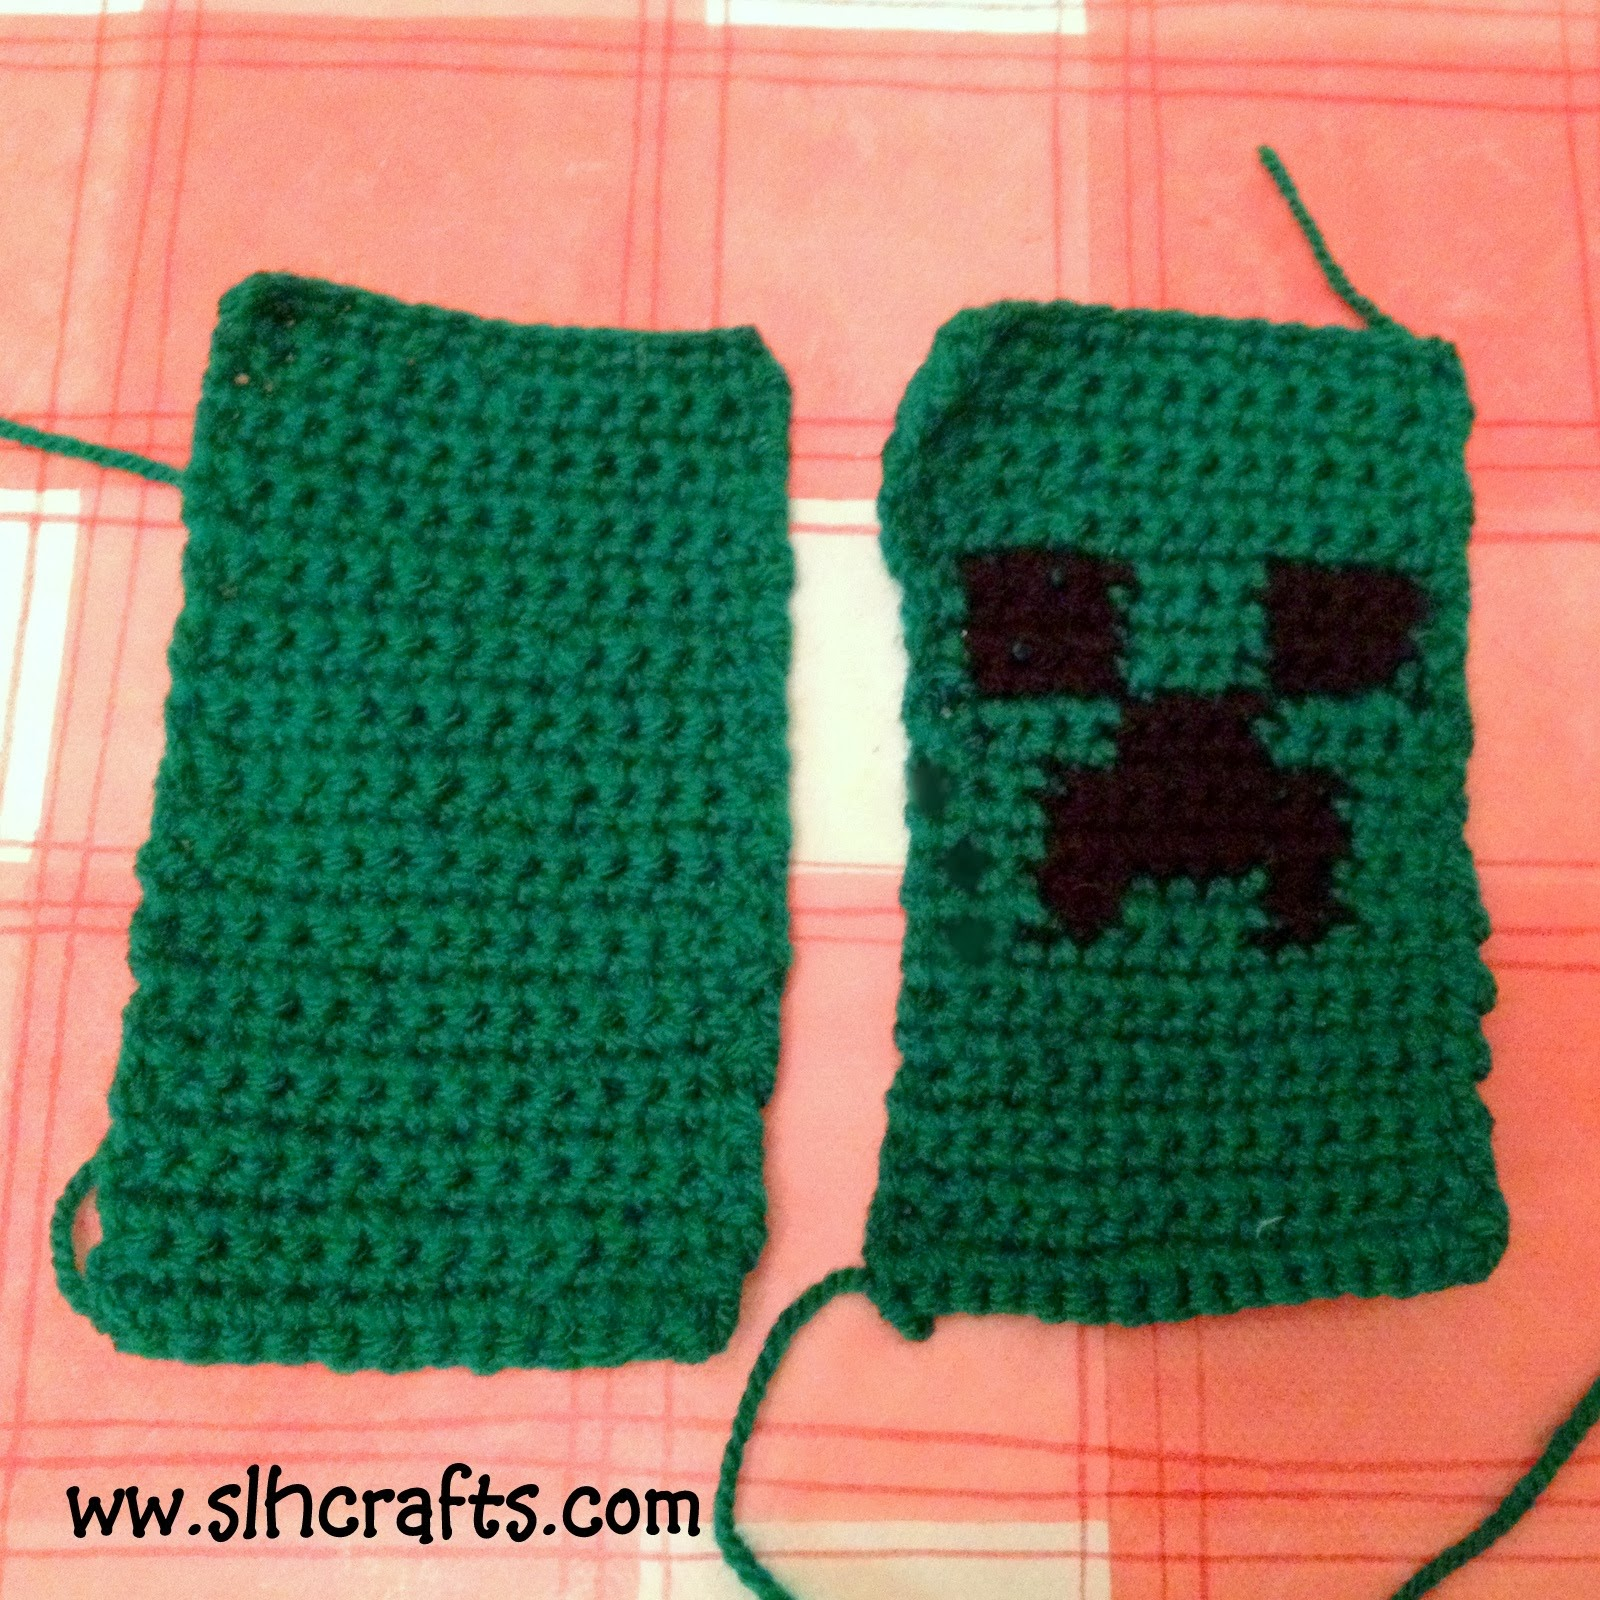 Minecraft Crochet Phone Case Tutorial